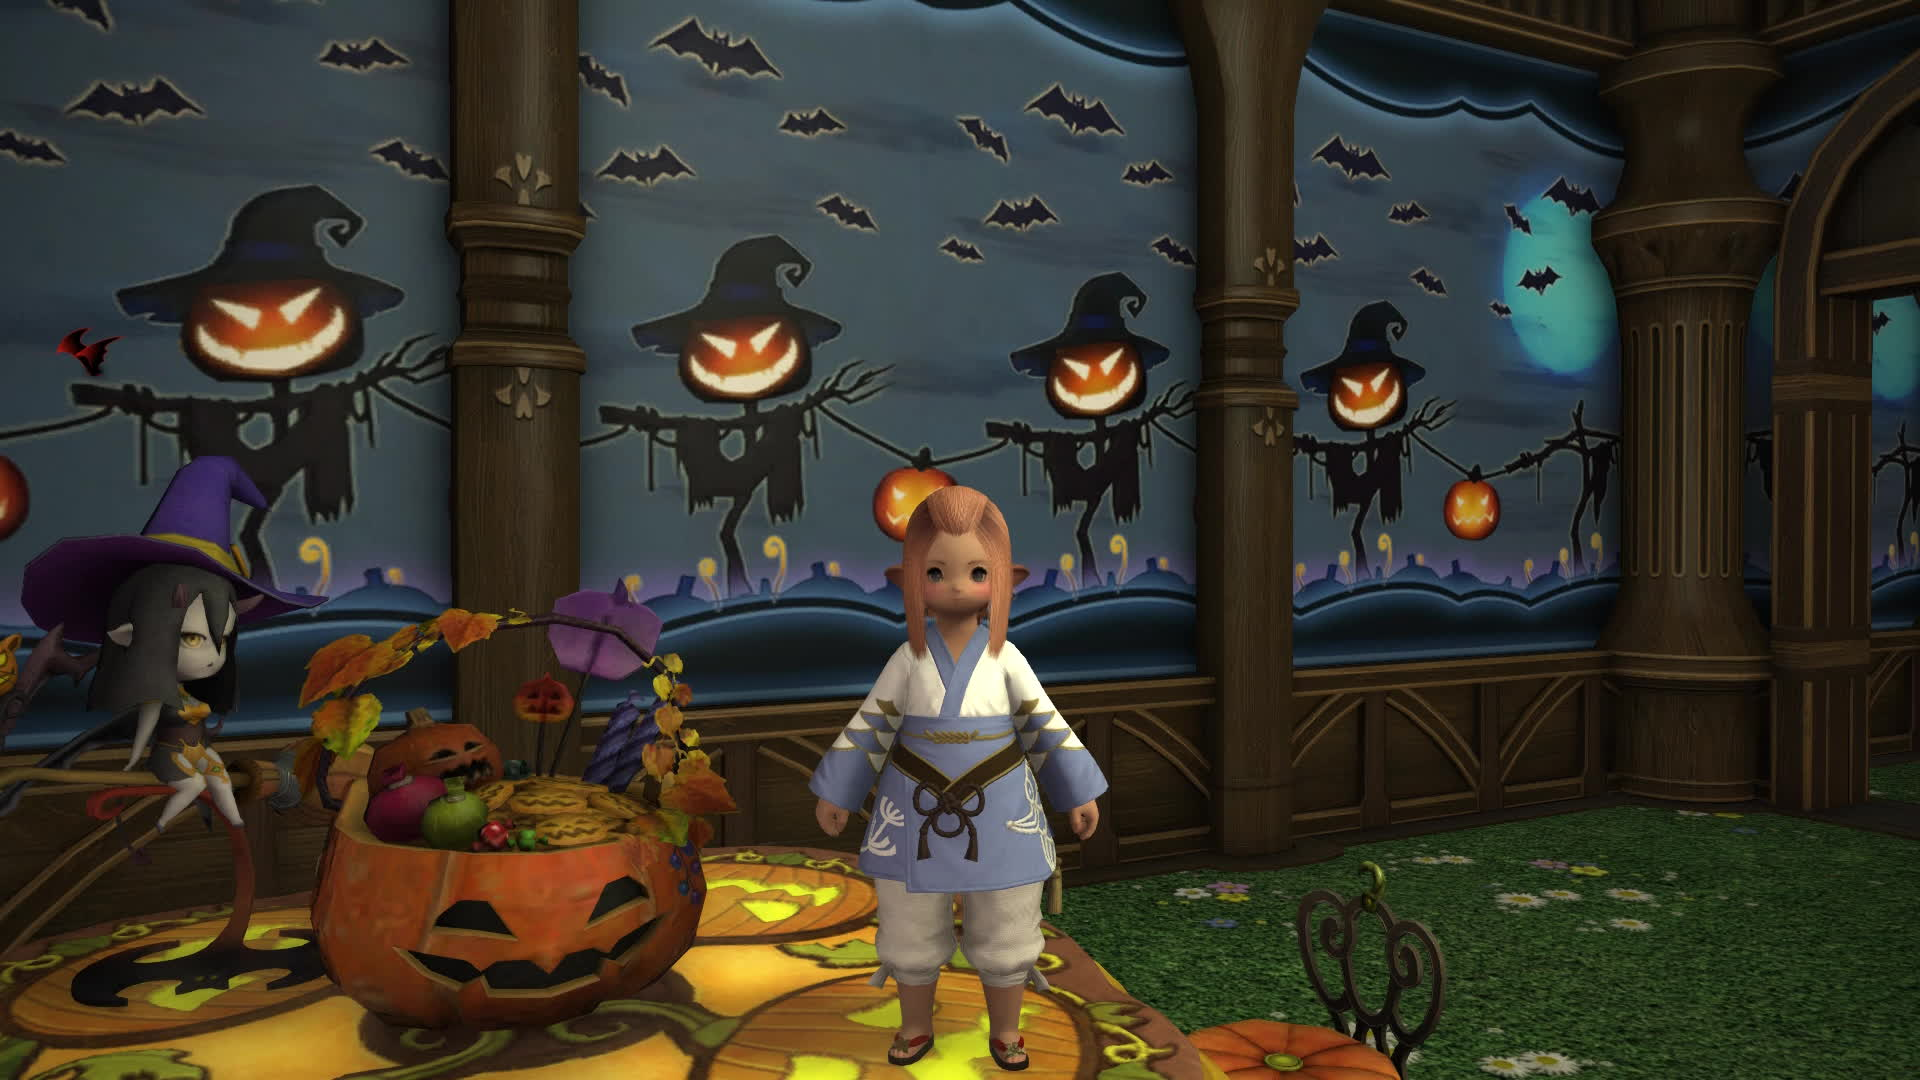 Lalafell Gifs Search | Search & Share on Homdor